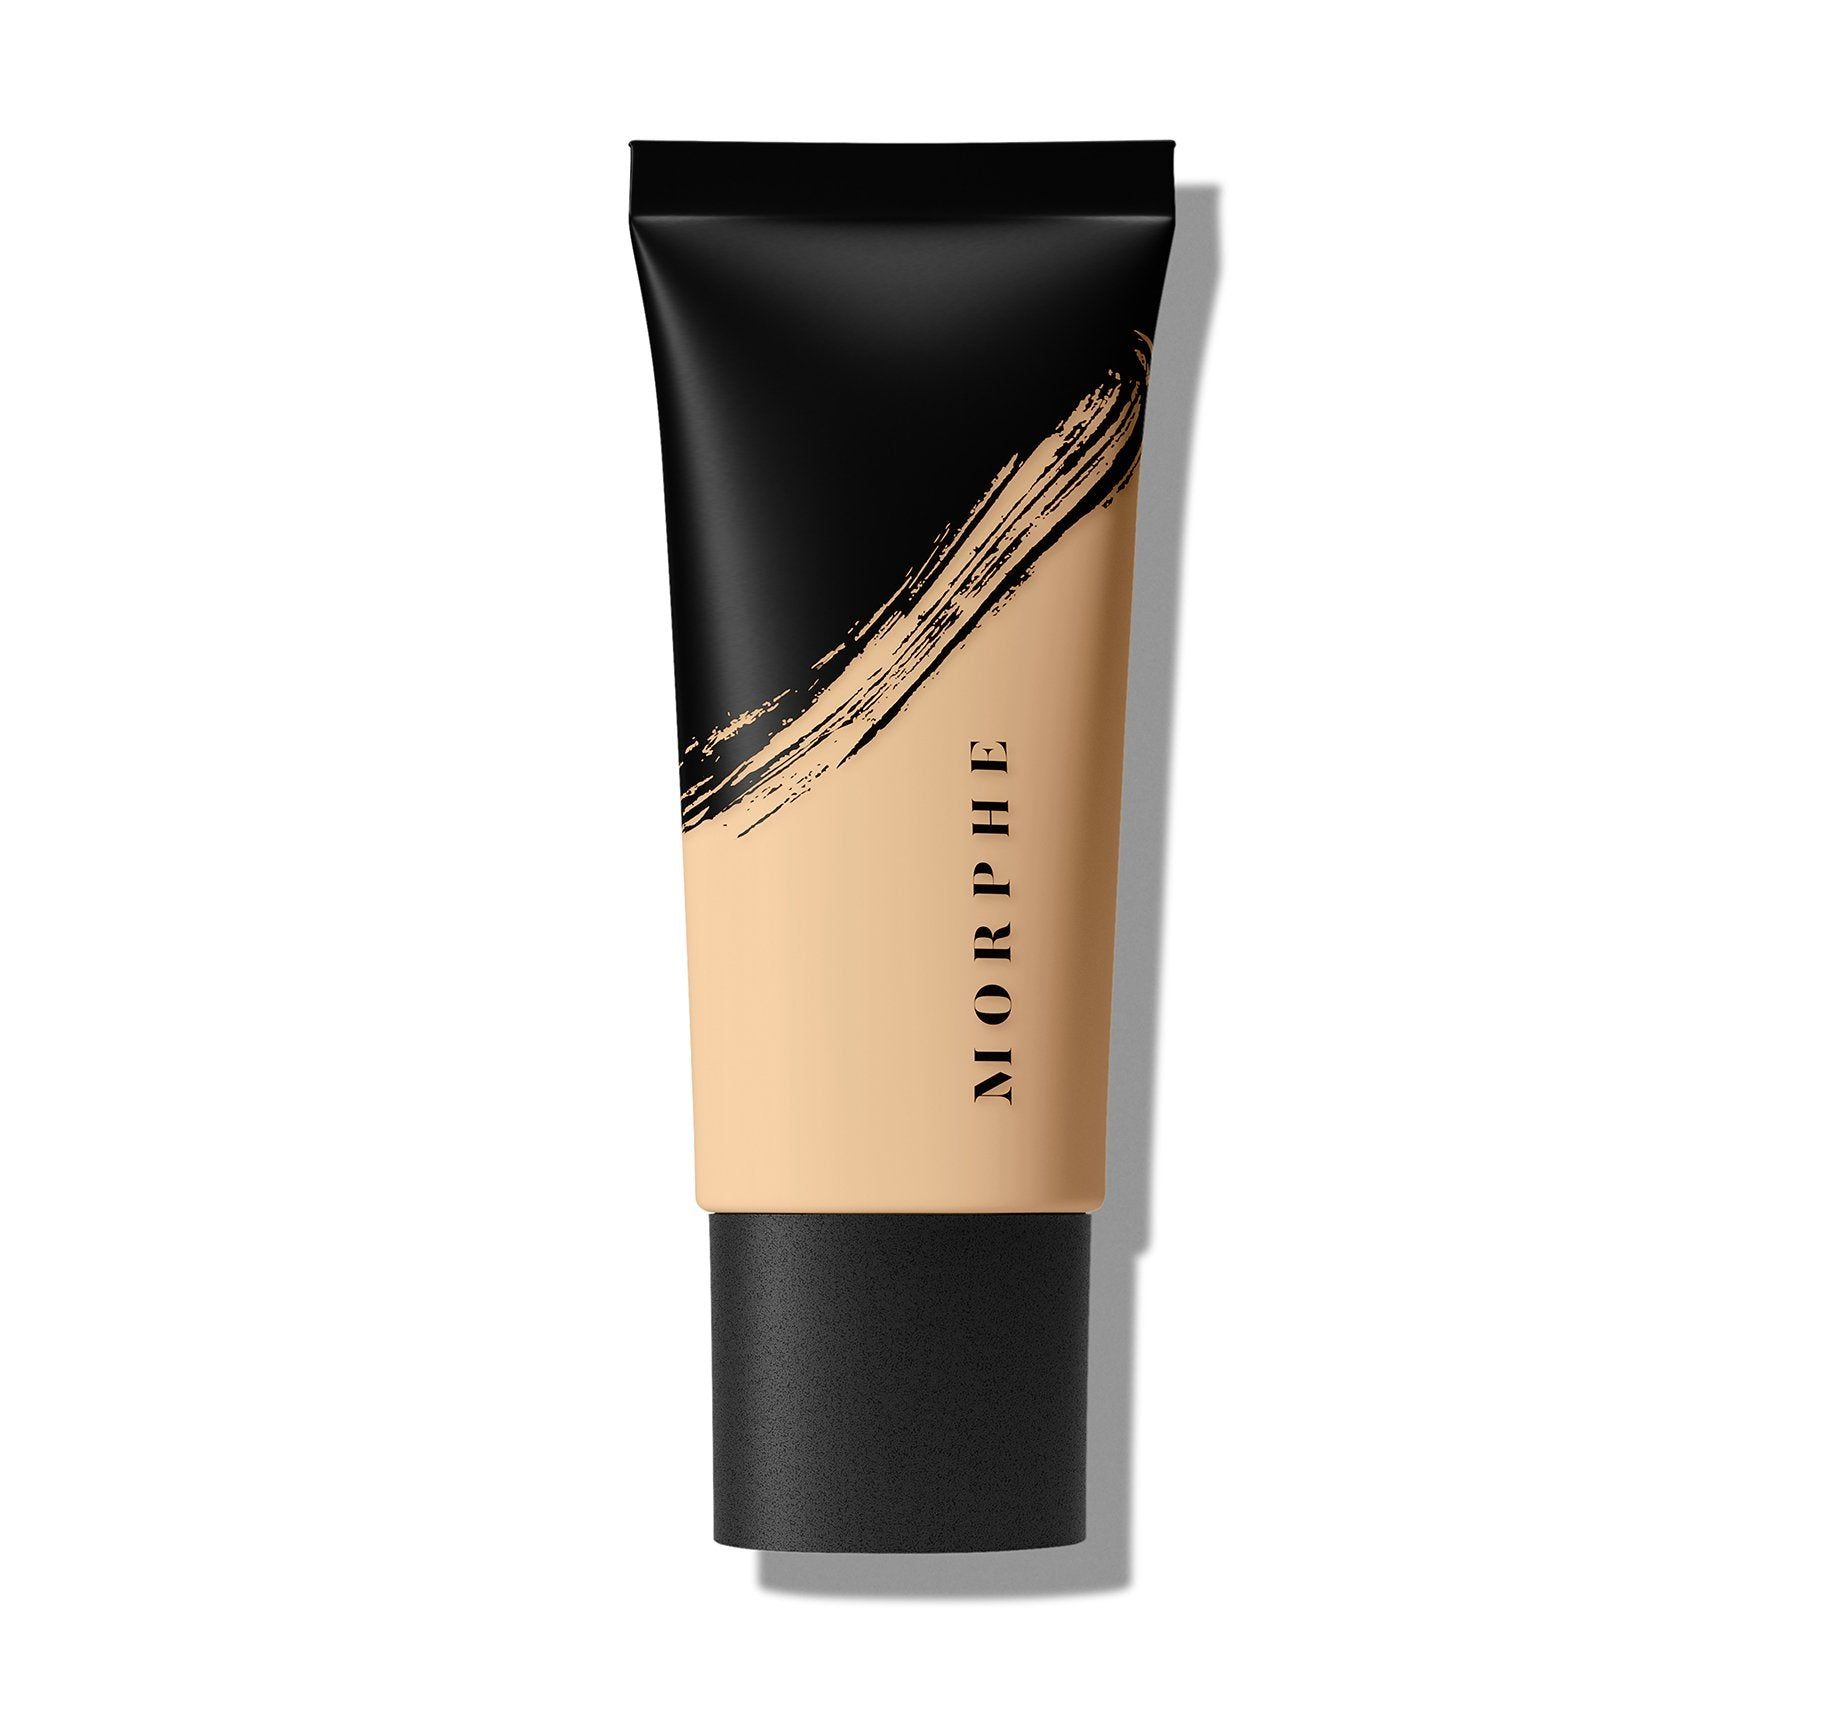 FLUIDITY FULL-COVERAGE FOUNDATION - F1.70, view larger image